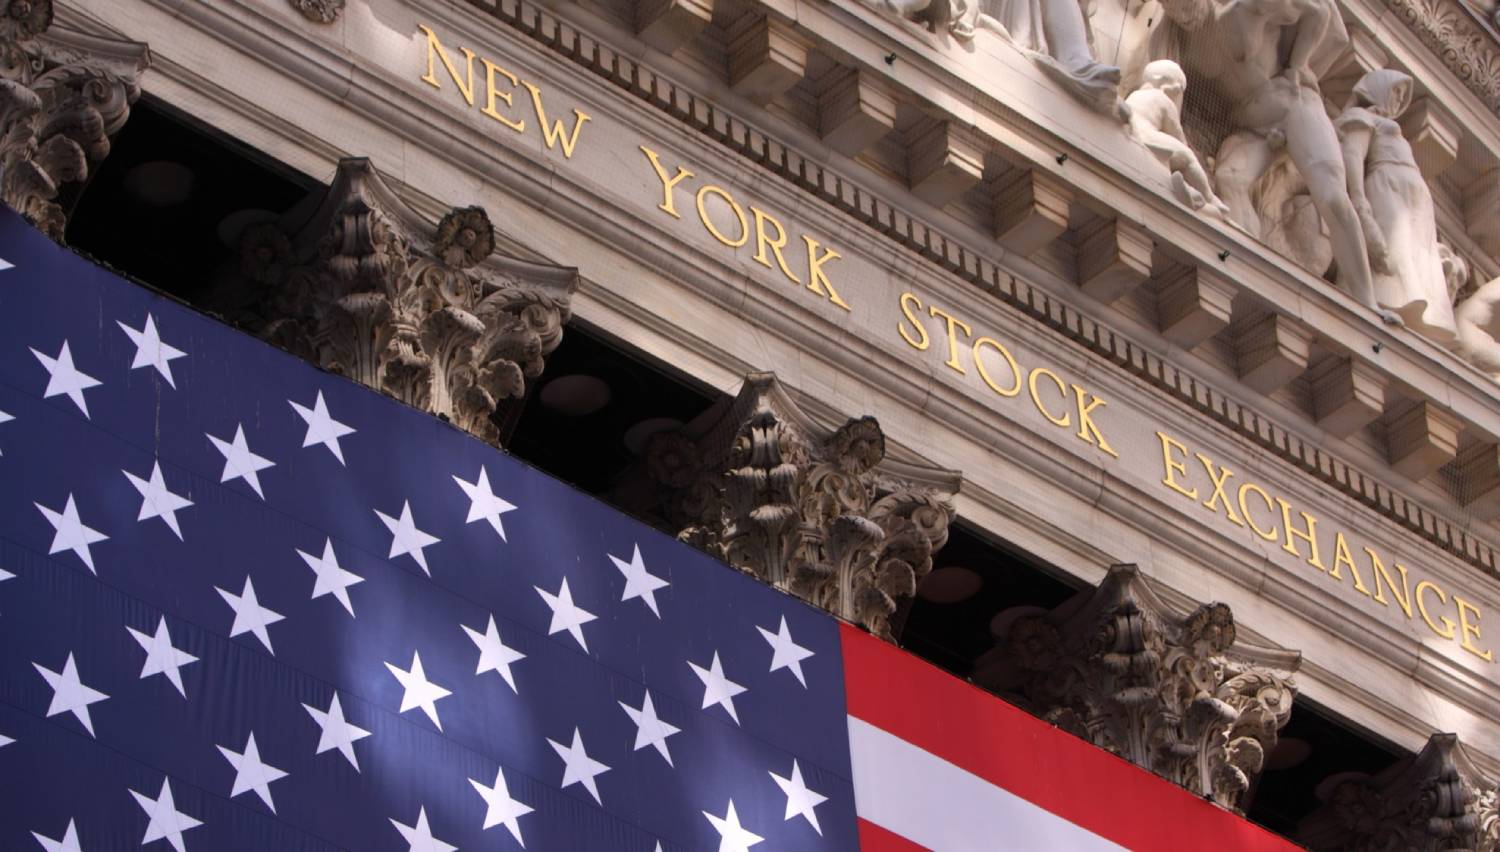 New York Stock Exchange - Things To Do In New York City